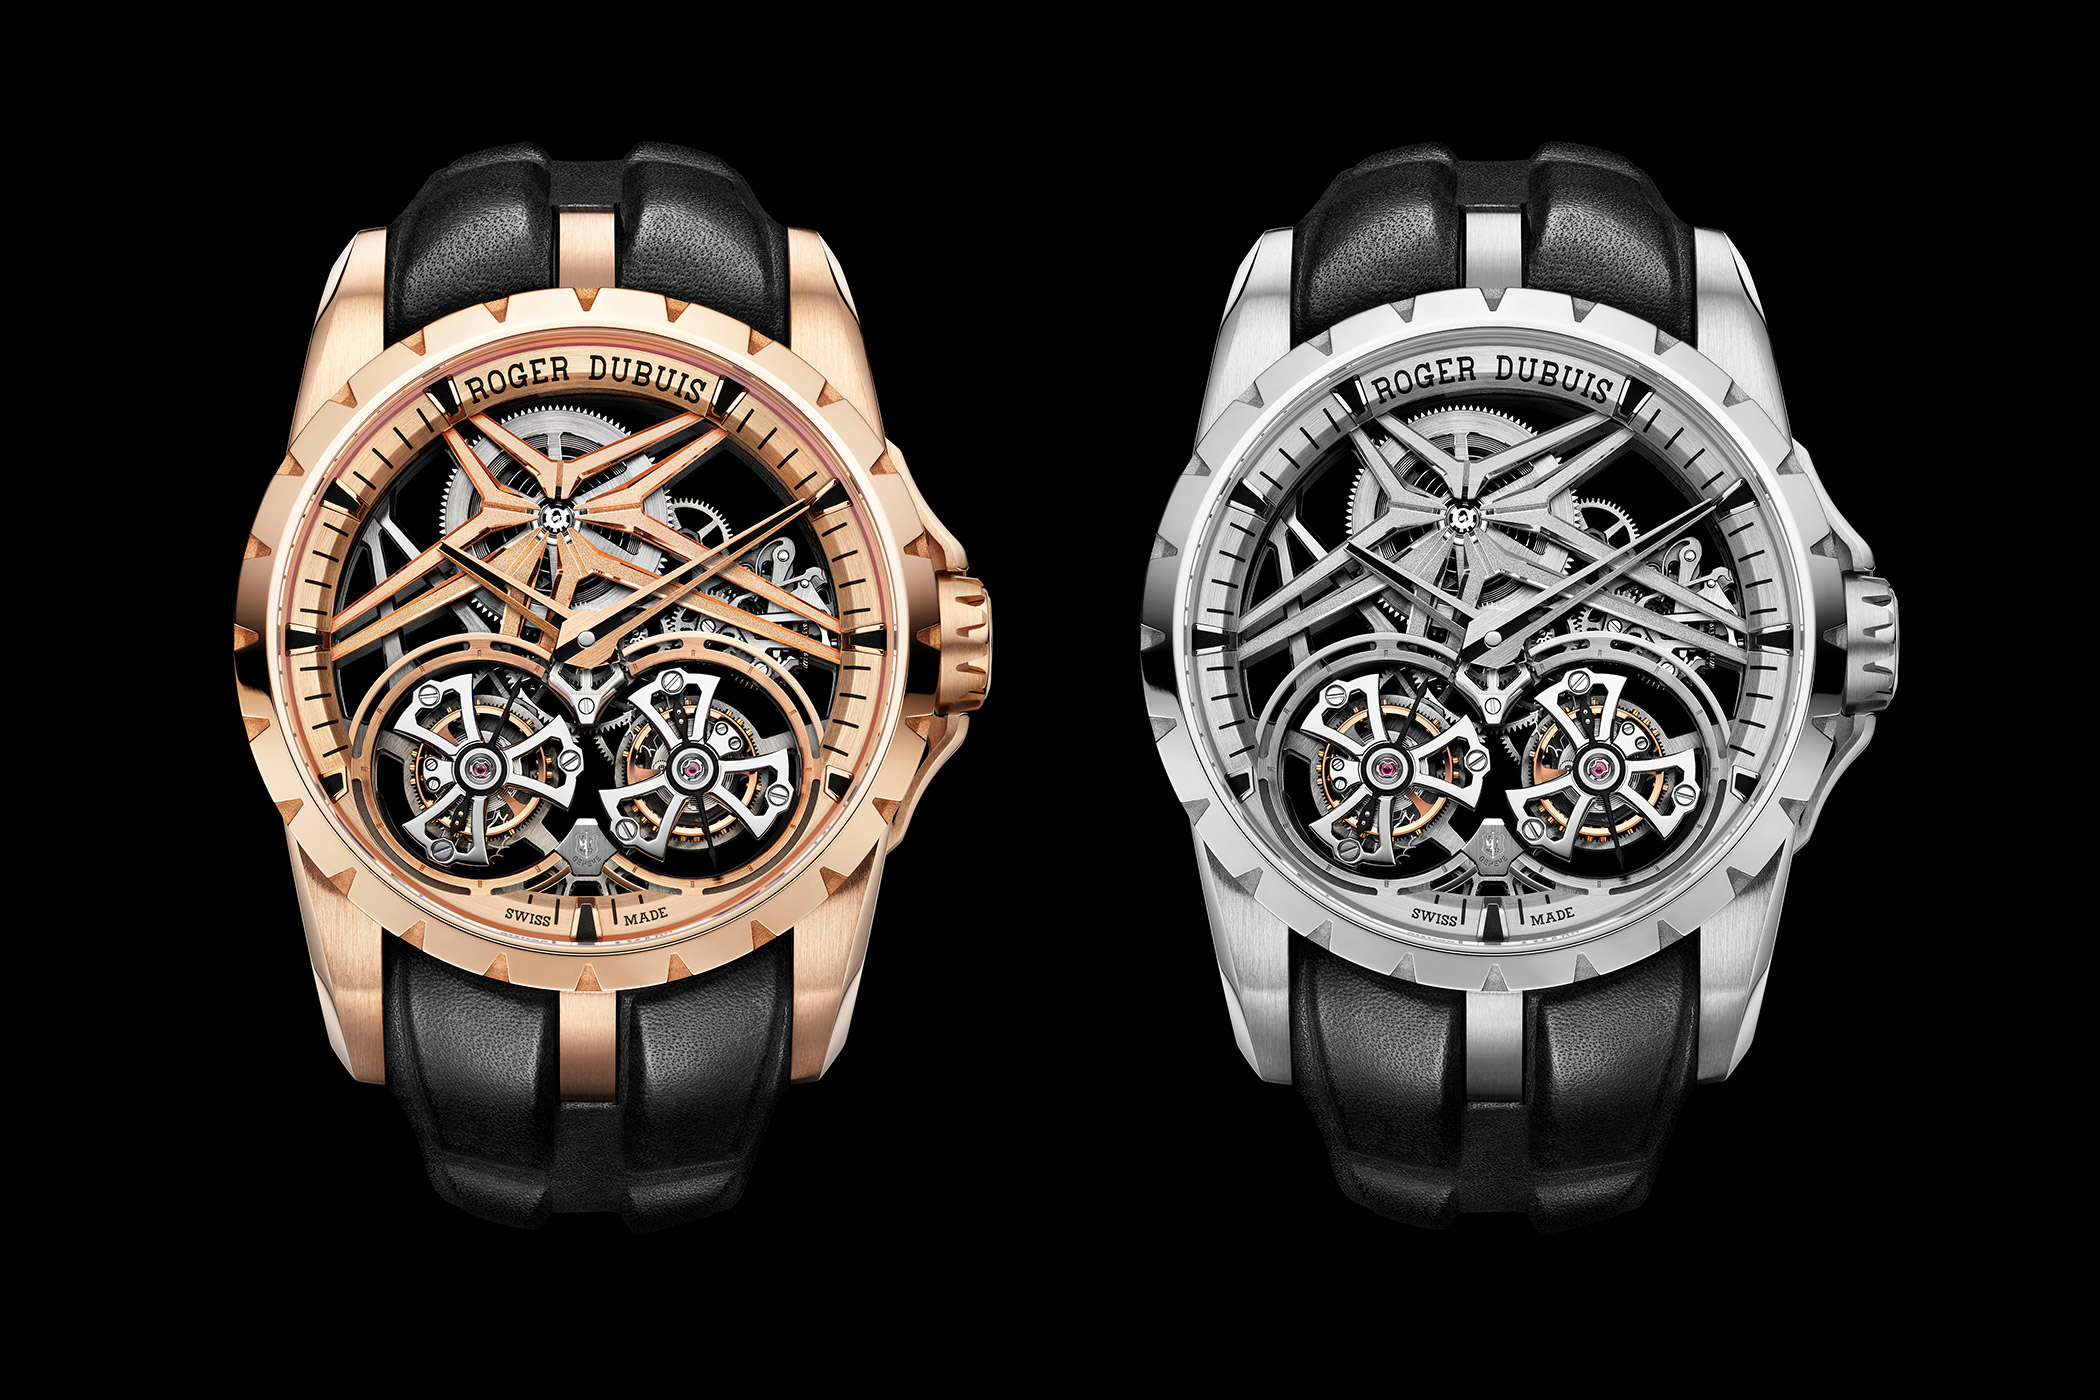 Swisswatches-Roger-Dubuis-RDDBEX0920-RDDBEX0819-Excalibur-Double-Flying-Tourbillon.jpg